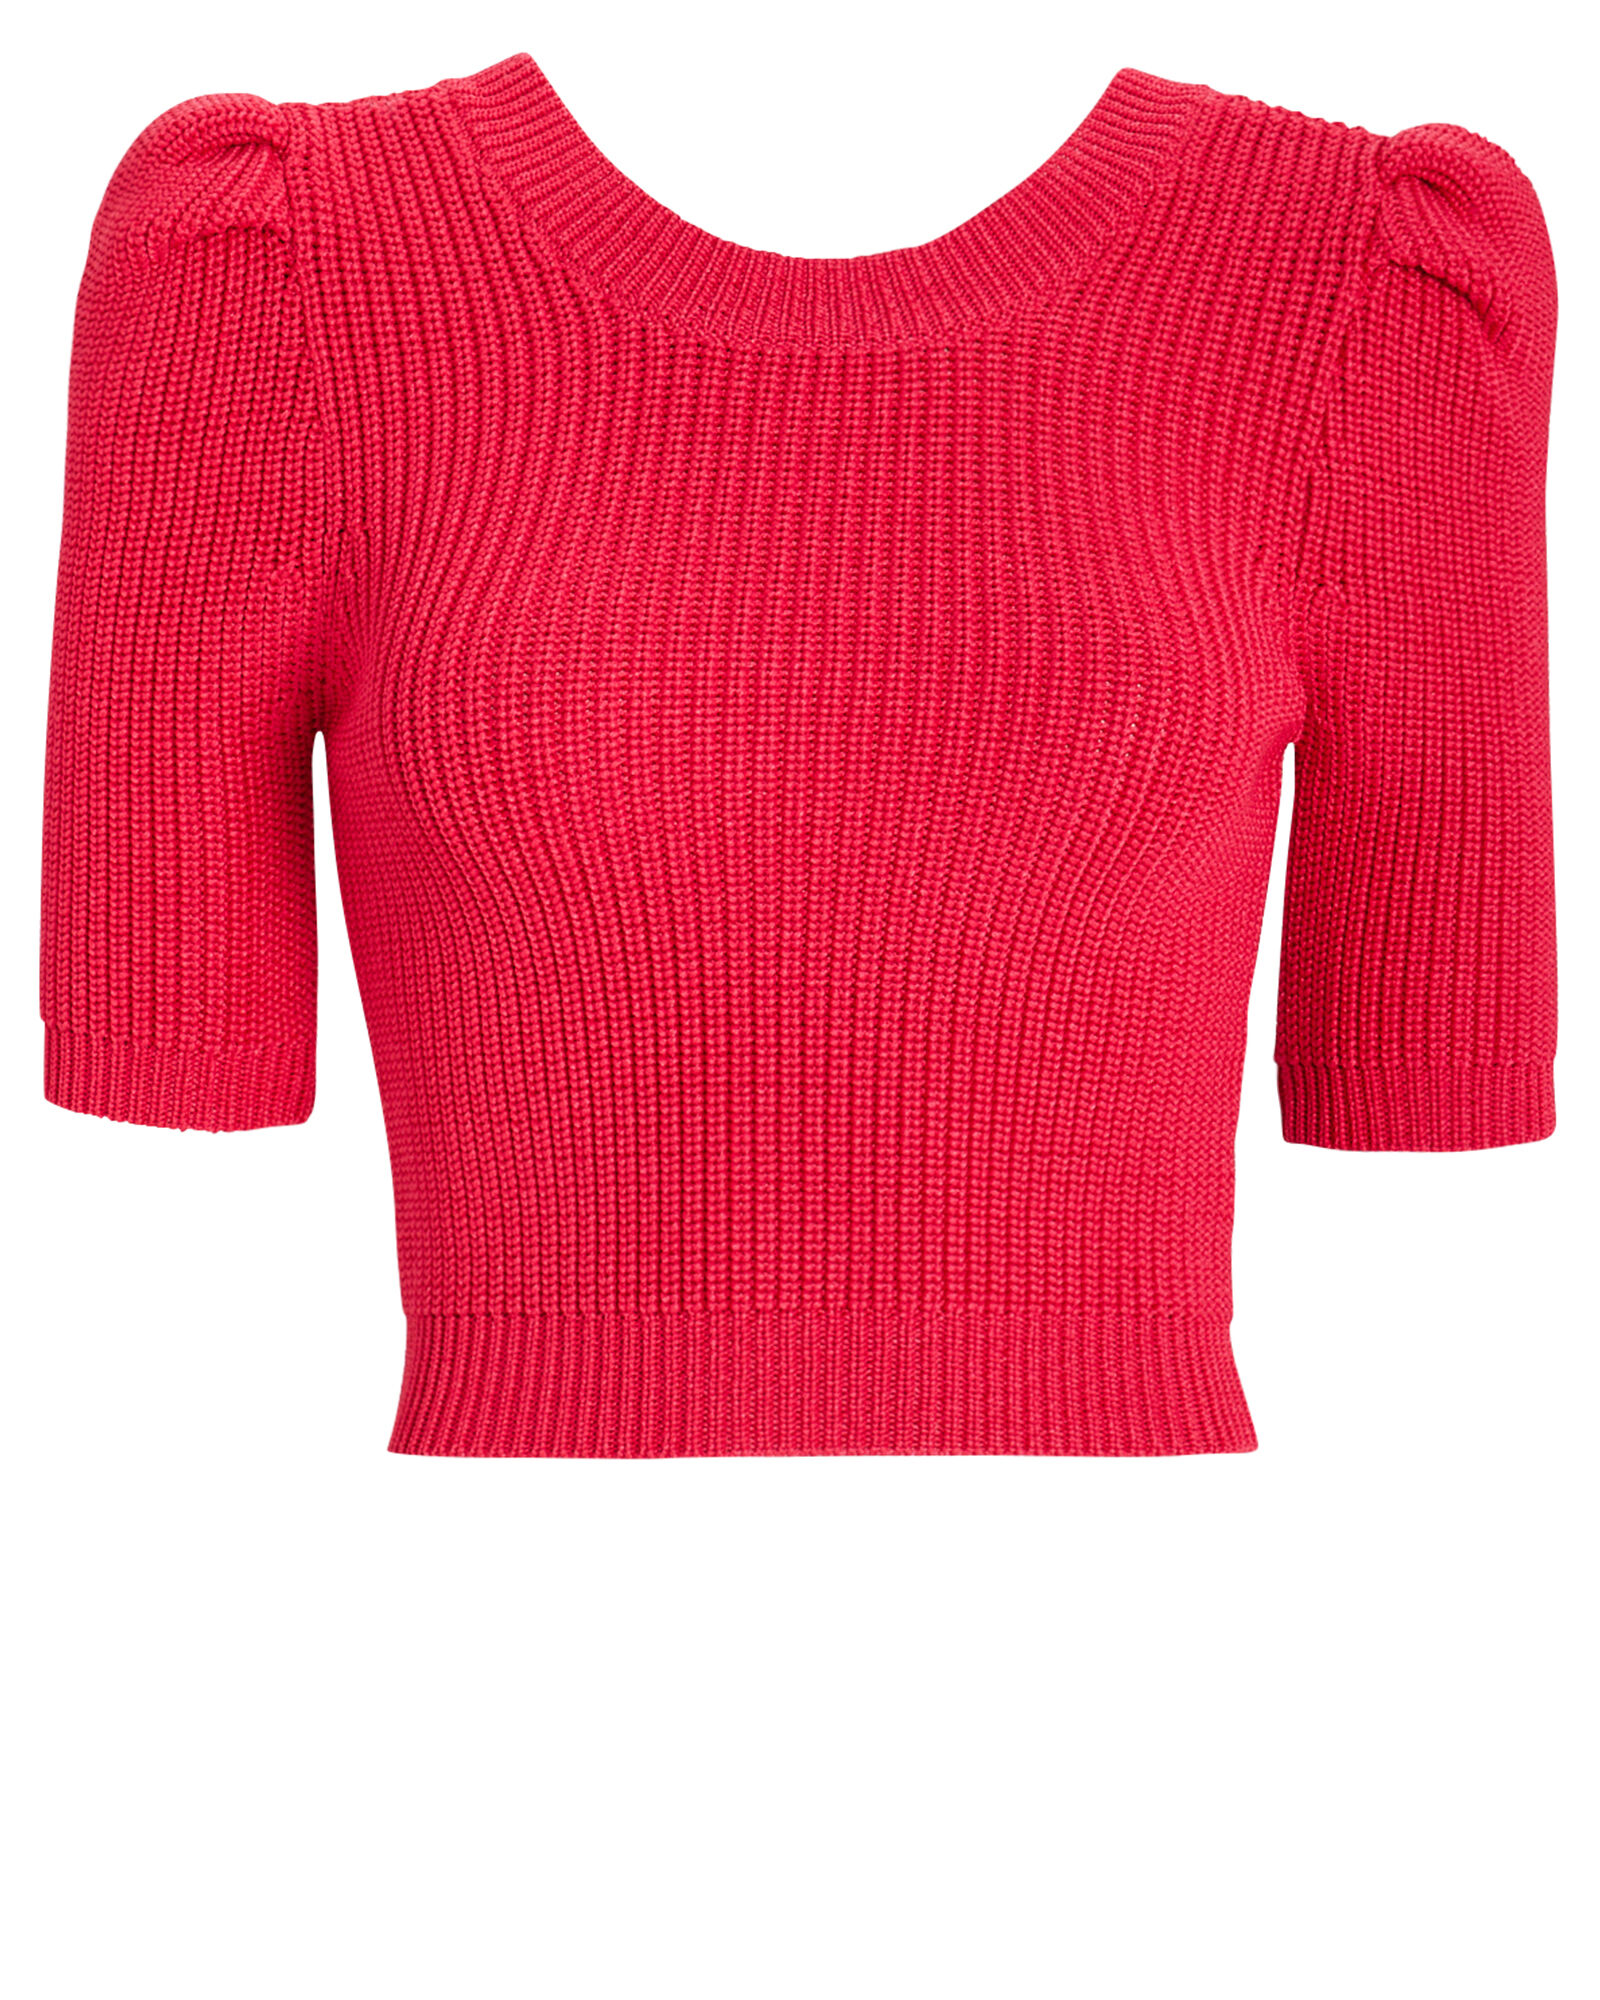 Pleated Sleeve Knit Crop Top, RED, hi-res